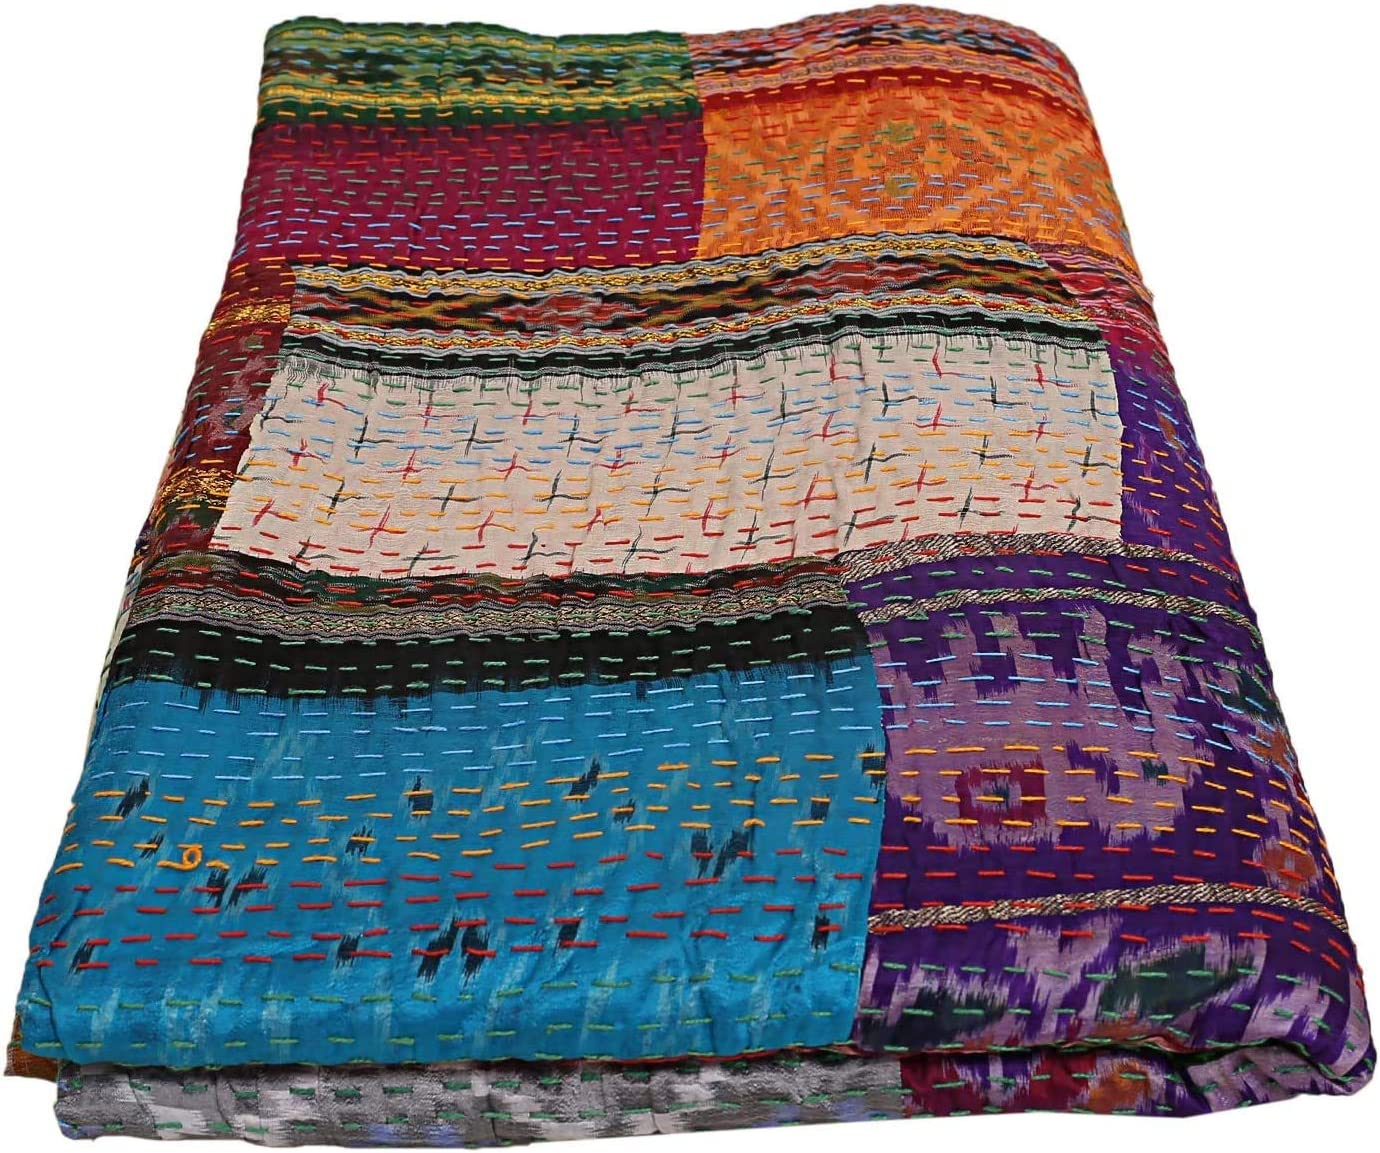 Charoli Enterprises Kantha Silk Patola Silk Vintage Quilts Queen Handmade Patchwork Reversible Throw Coverlets Ethnic Handmade Multi Color Patchwork Quilts (90'' x 60'' Inches)